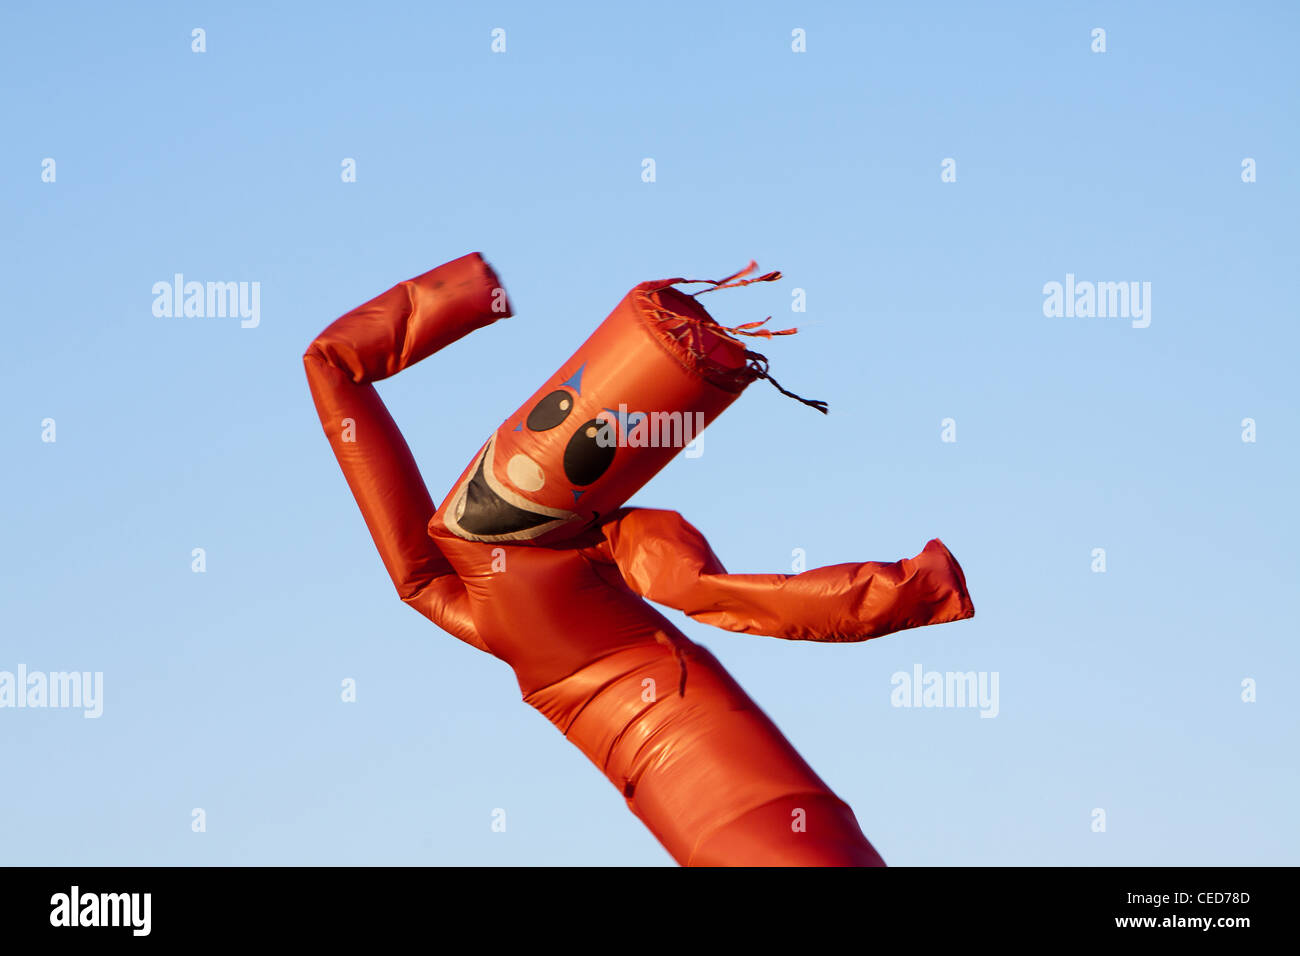 wacky waving inflatable arm flailing tube man dating Find great deals on ebay for wacky inflatable in retail hillary clinton wacky inflatable tube man airdancer 20' red advertising wacky wavy inflatable.